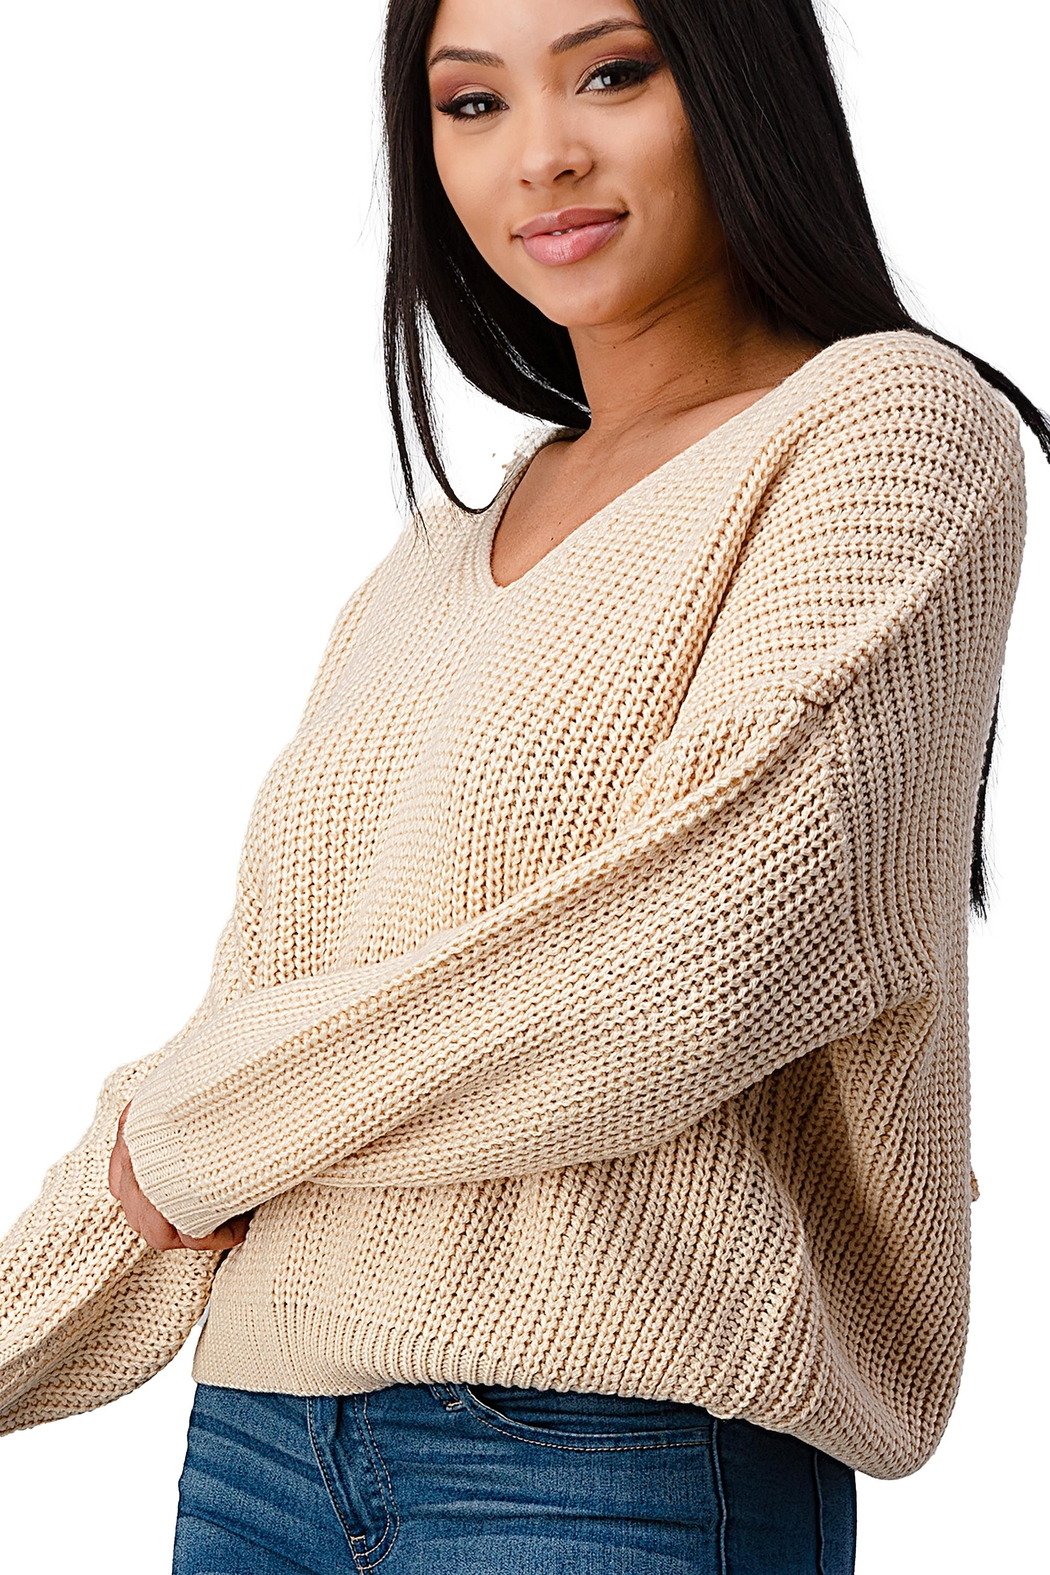 Miley & Molly Long Sleeve Lattice Oversize Pullover Sweater Top - Side Cropped Image